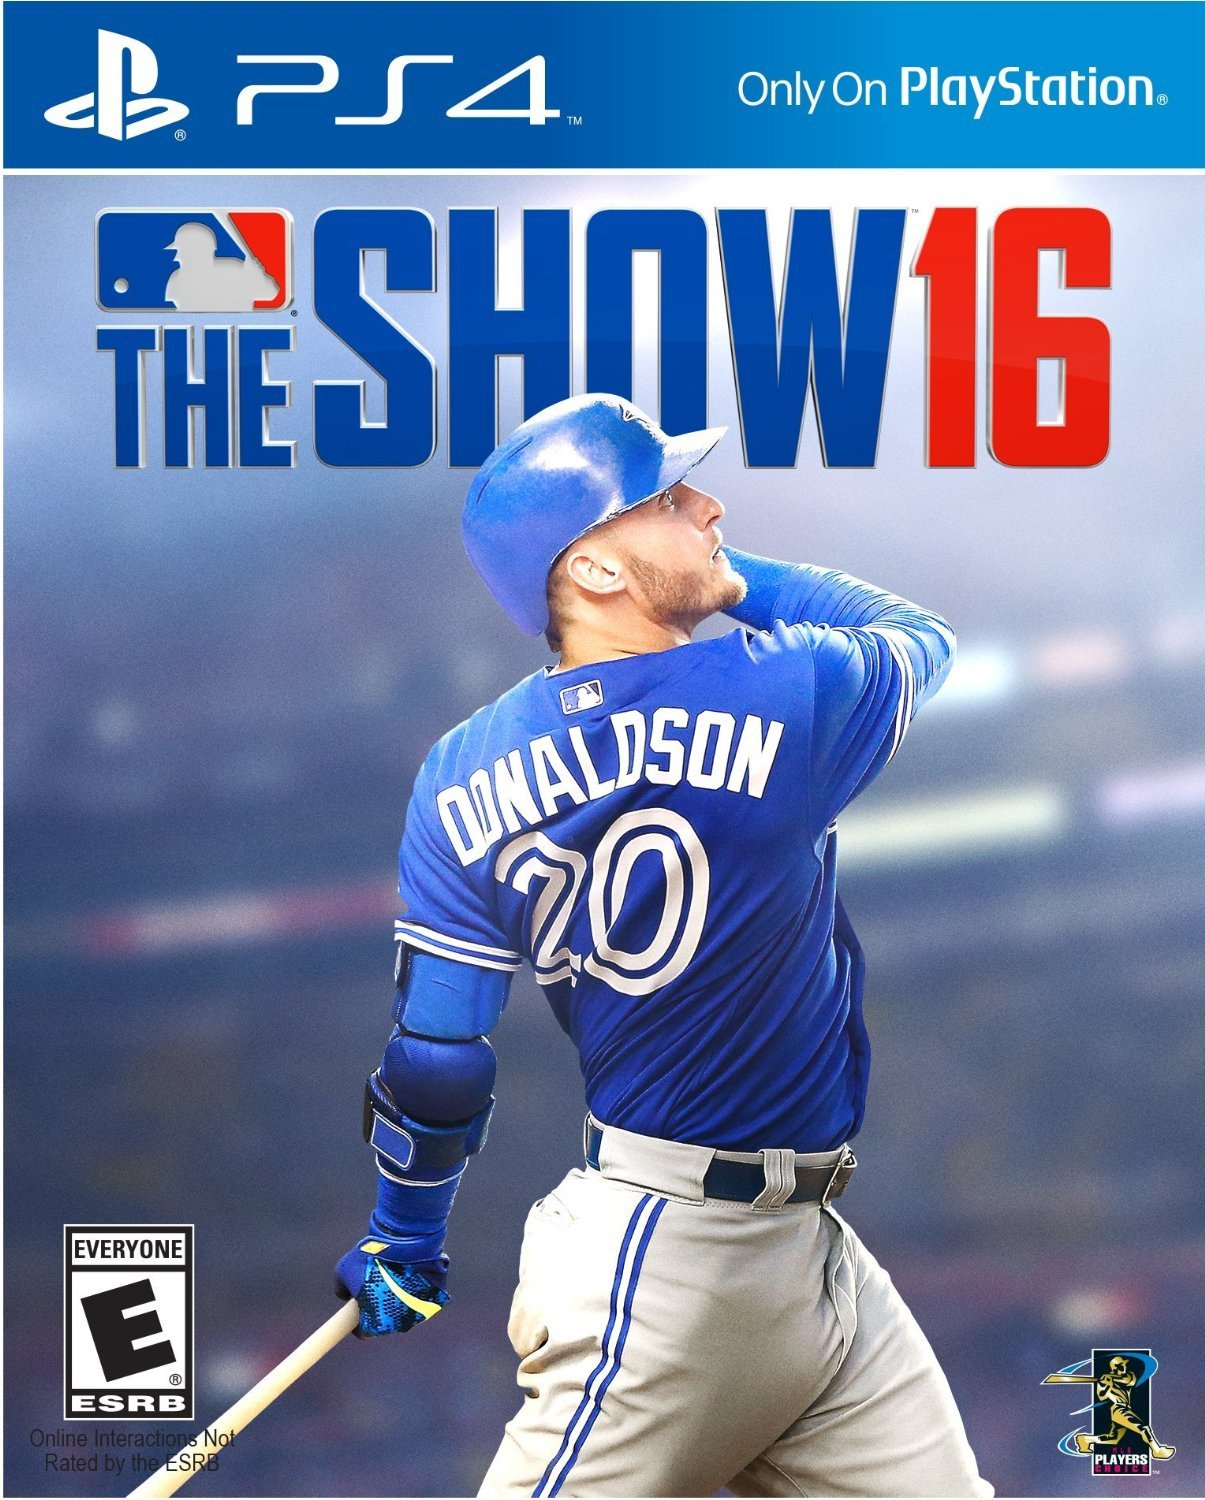 MLB The Show 16 - PS4 (Digital Code)